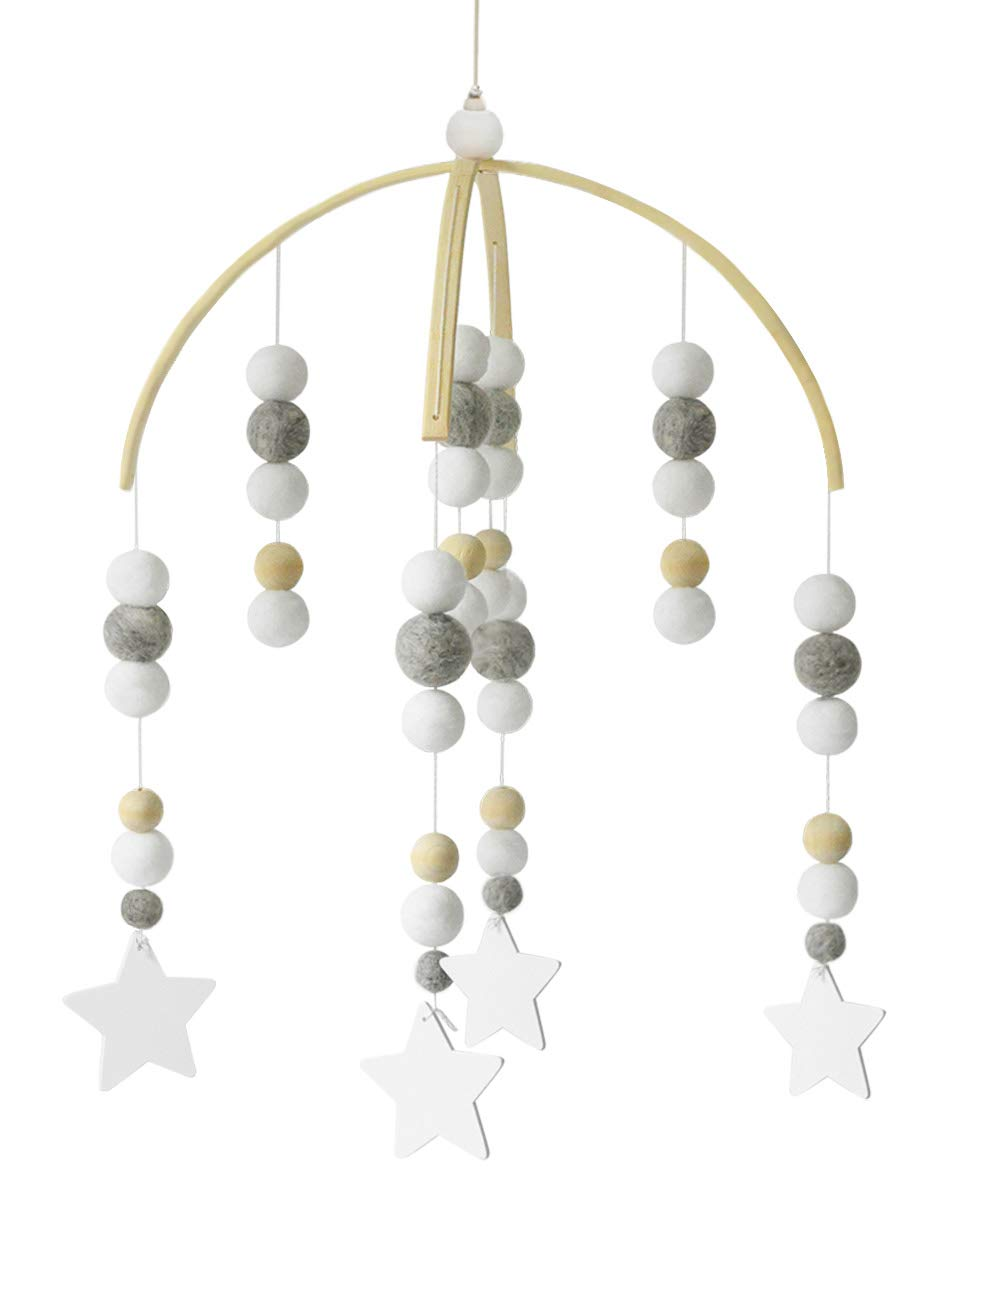 Baby Crib Mobiles Wooden Beads for Children Boys Girls Babies Bed Room Designer Colors to Match Nursery Delight (Z-Starlet)